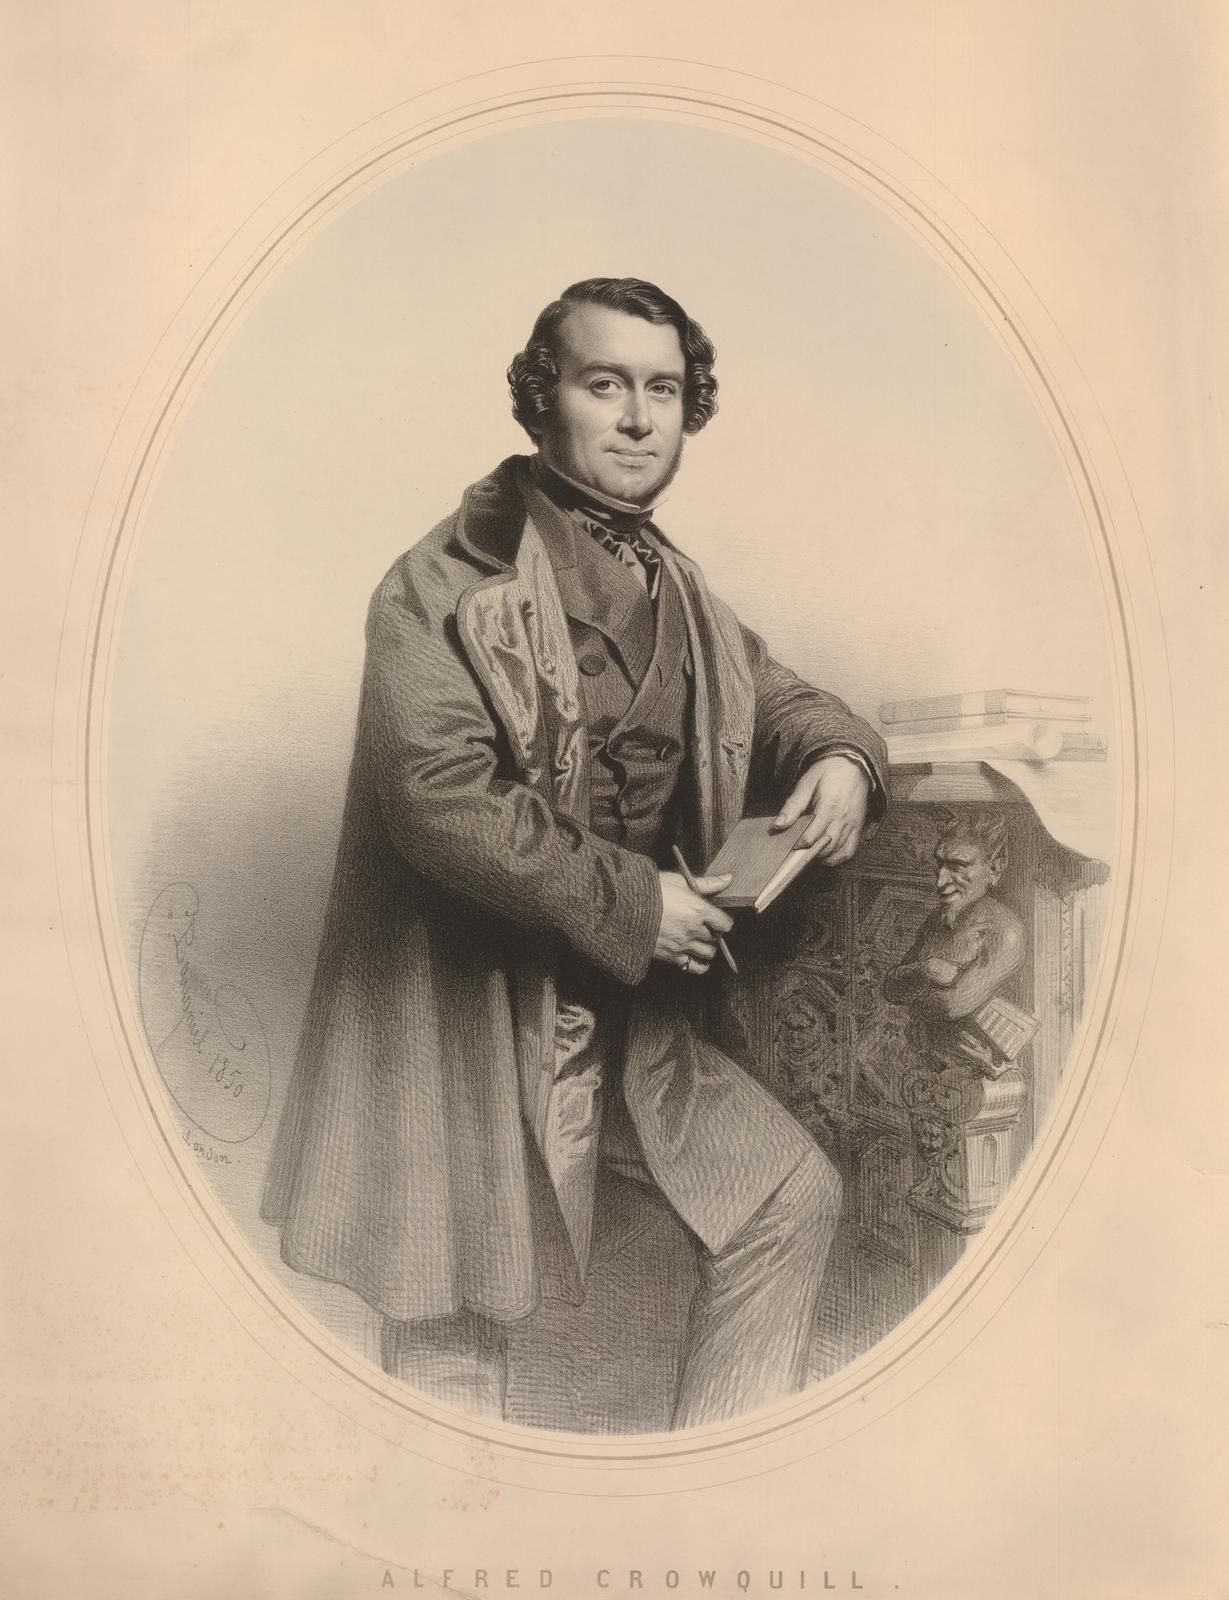 Image of Alfred Crowquill from Wikidata